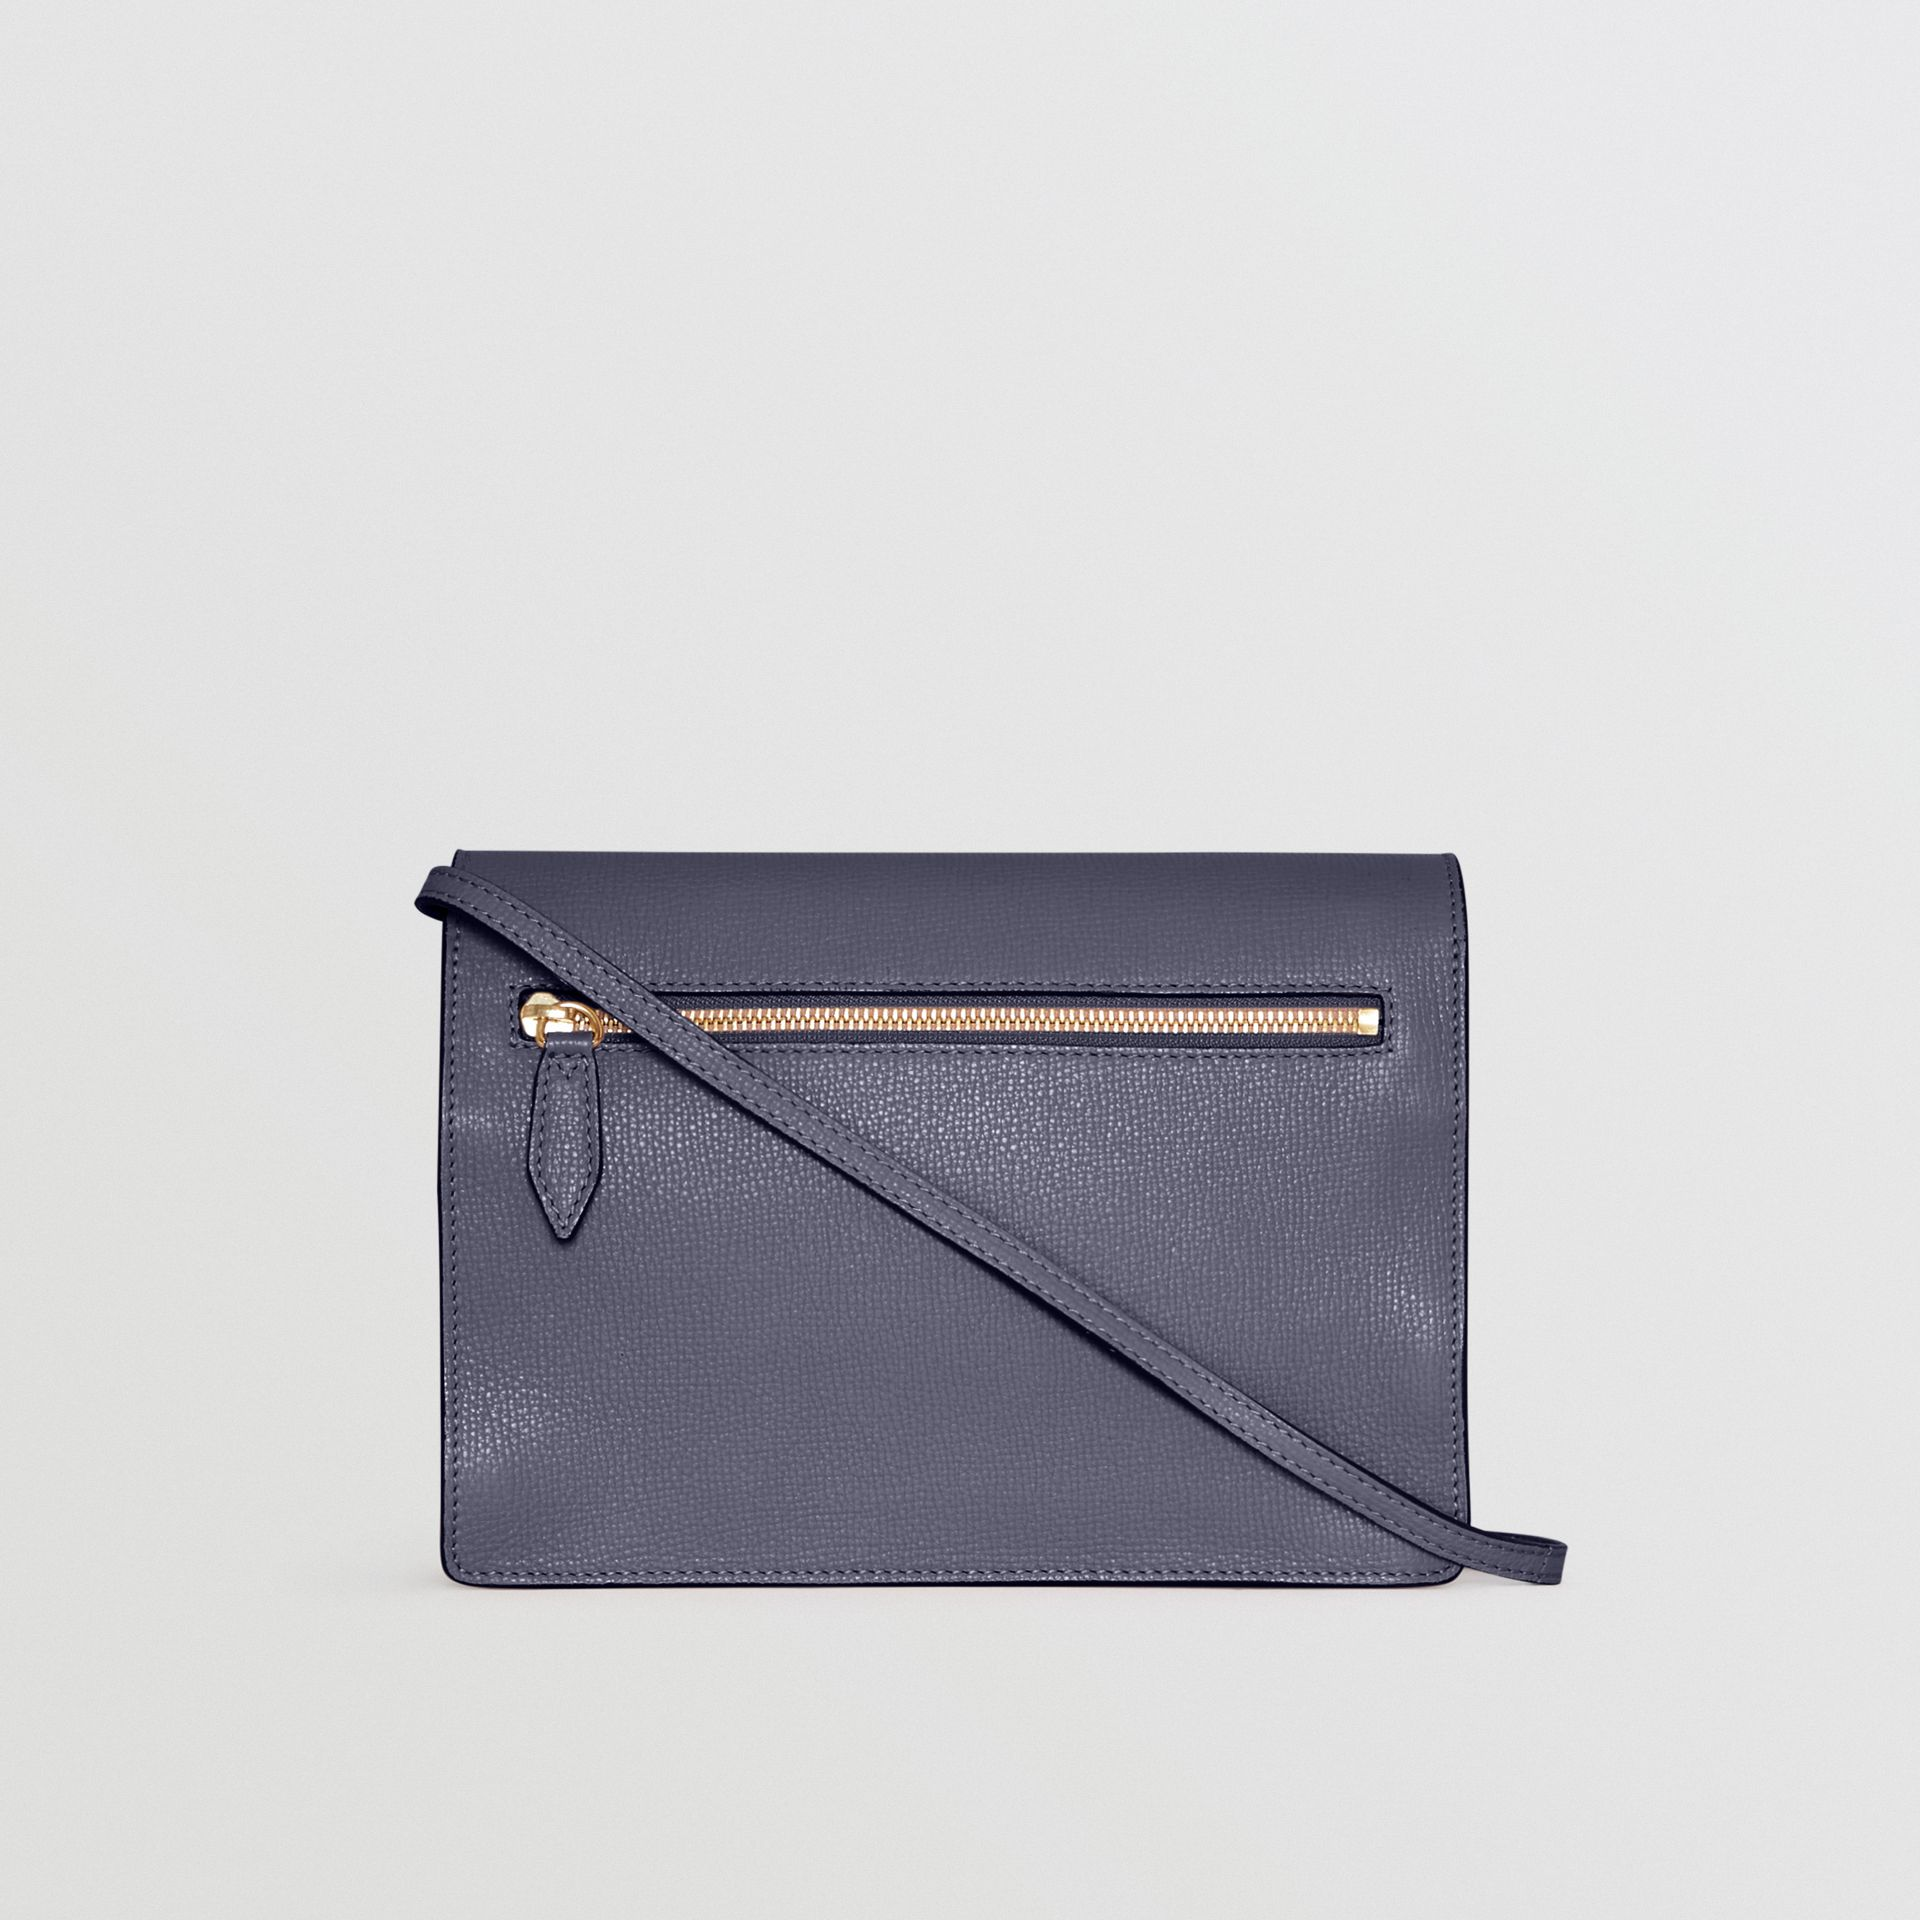 Small Leather and House Check Crossbody Bag in Ink Blue - Women | Burberry - gallery image 7